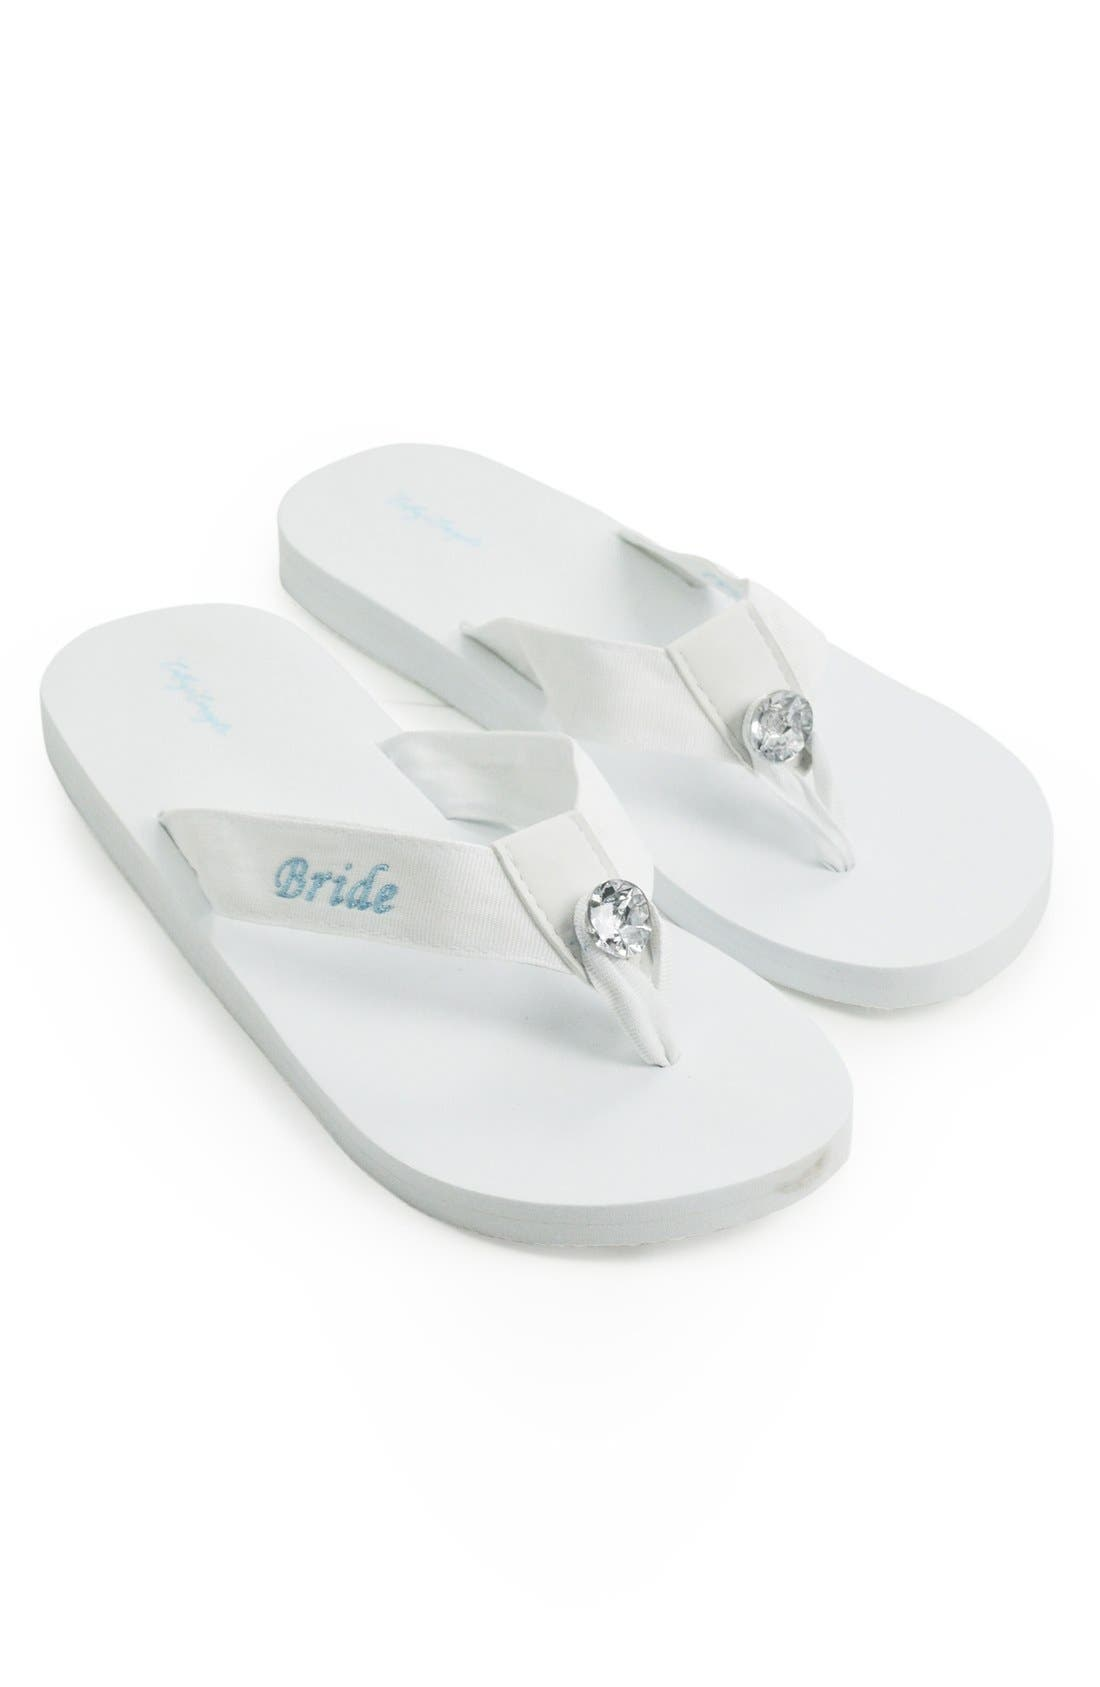 Cathy's Concepts 'Bride' Personalized Flip Flops